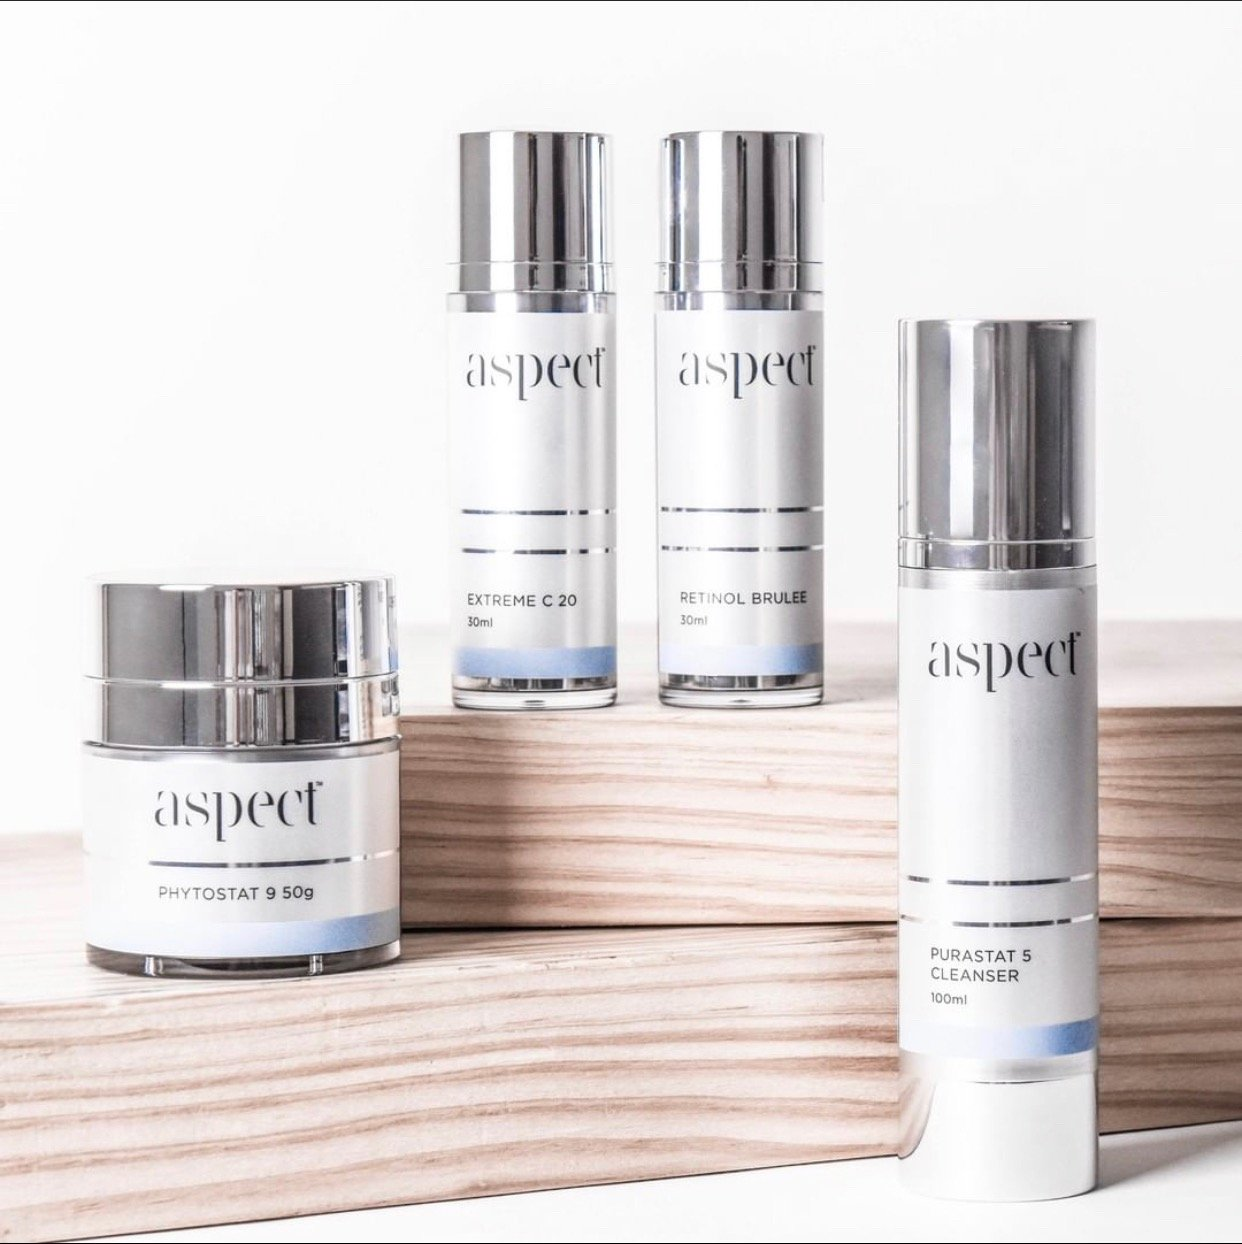 Aspect Skin care products. Cosmeceuticals for healthy skin